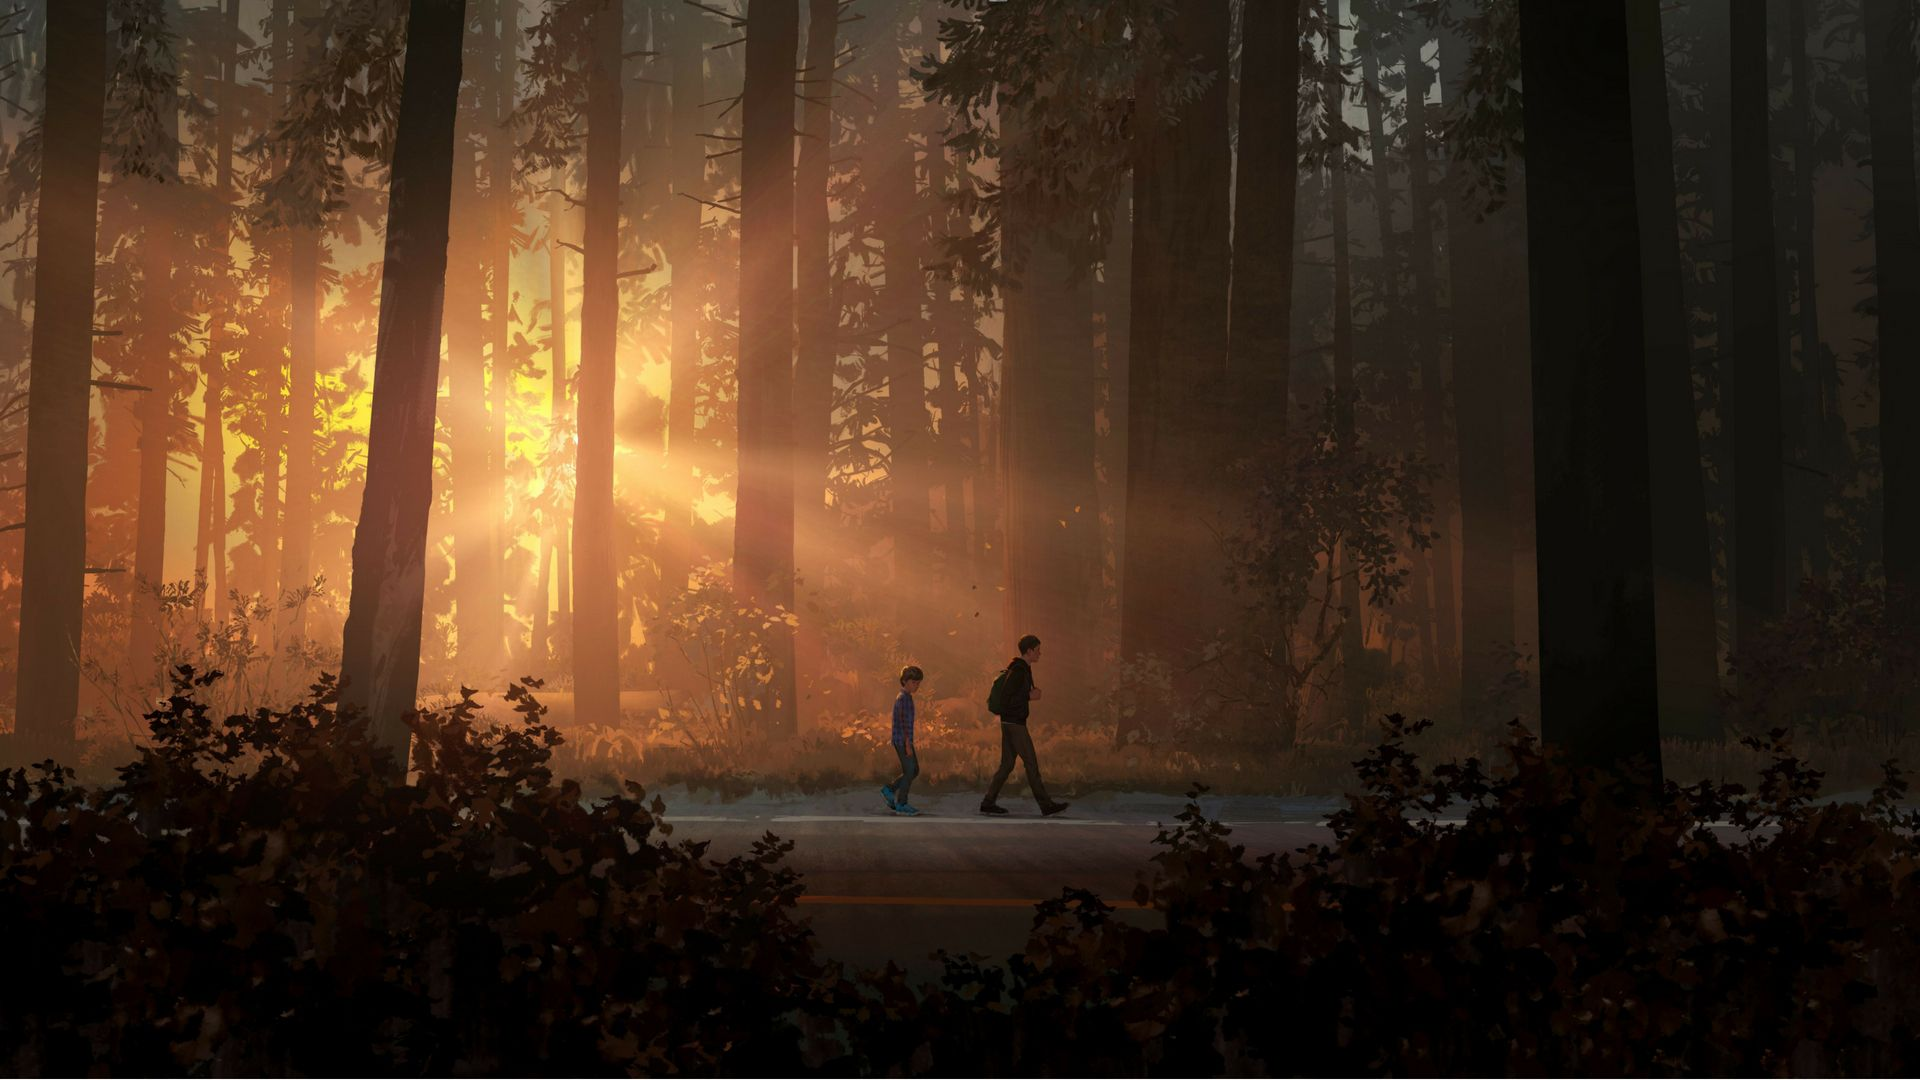 Pin By Sofie Kjaer On Wallpaper Life Is Strange Wallpaper Life Is Strange Background Images Wallpapers